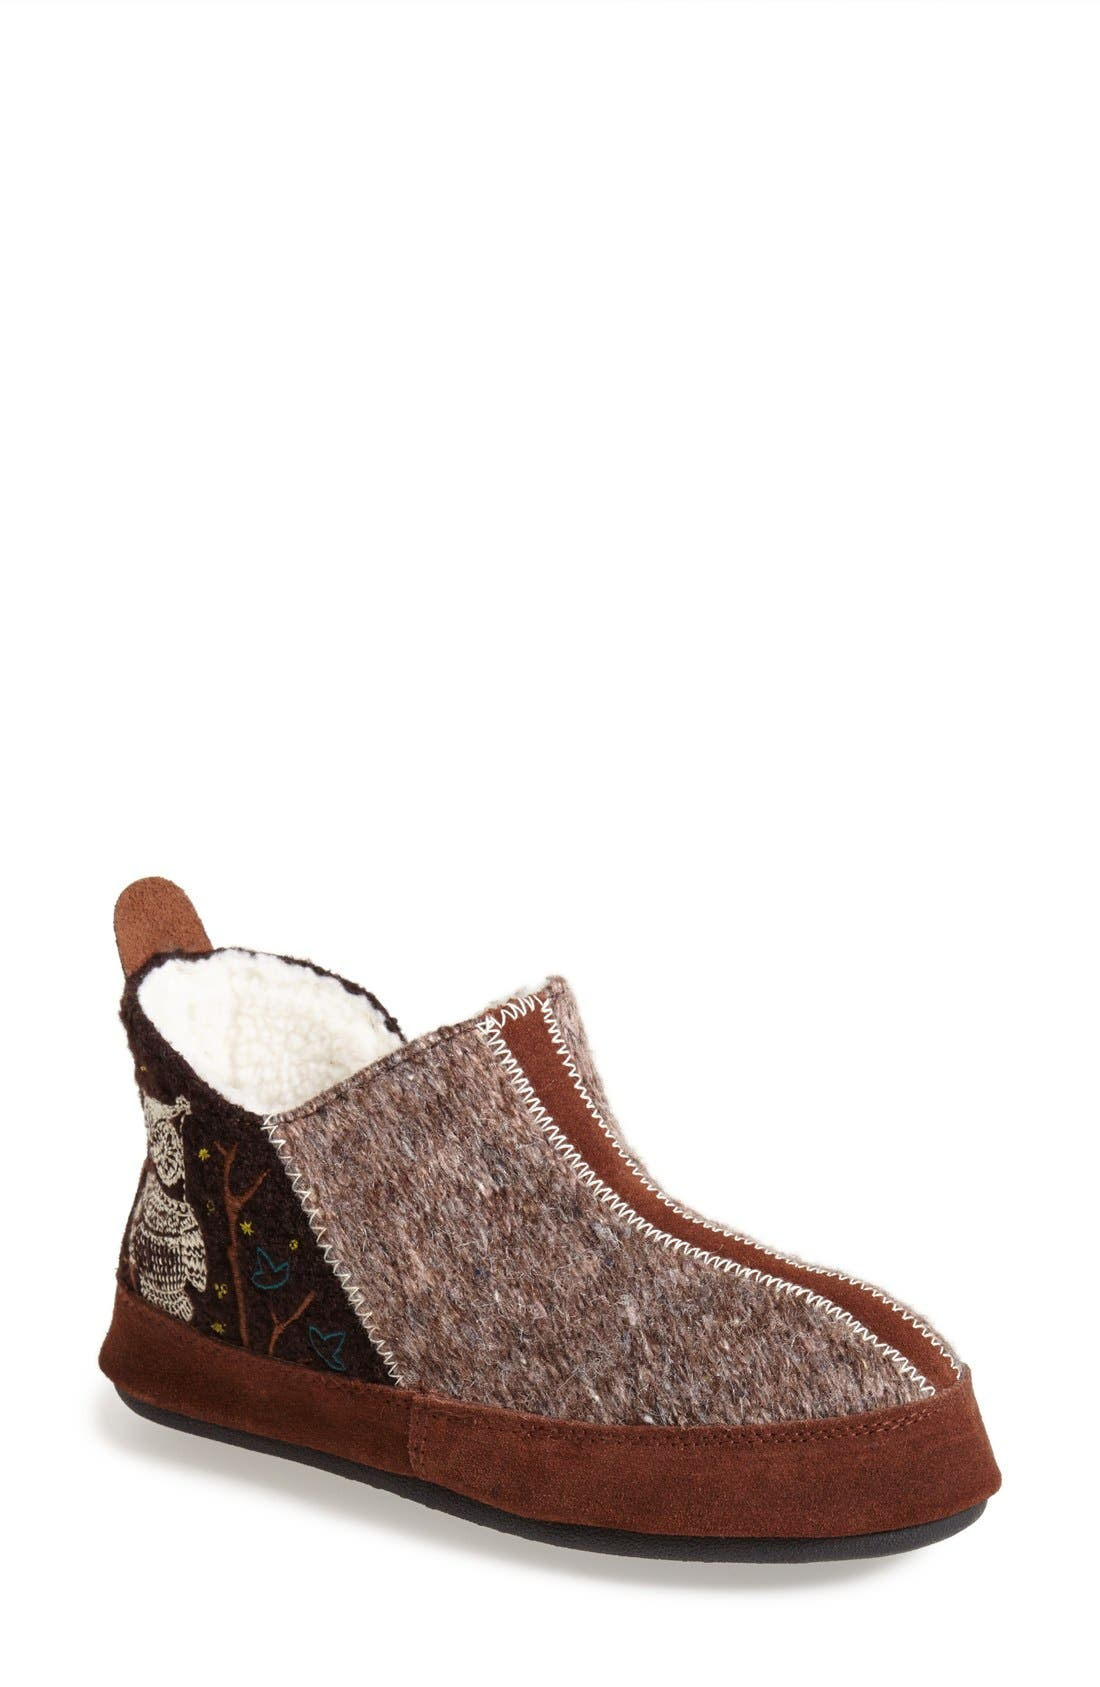 'Forest' Bootie Slipper,                             Main thumbnail 1, color,                             Chocolate